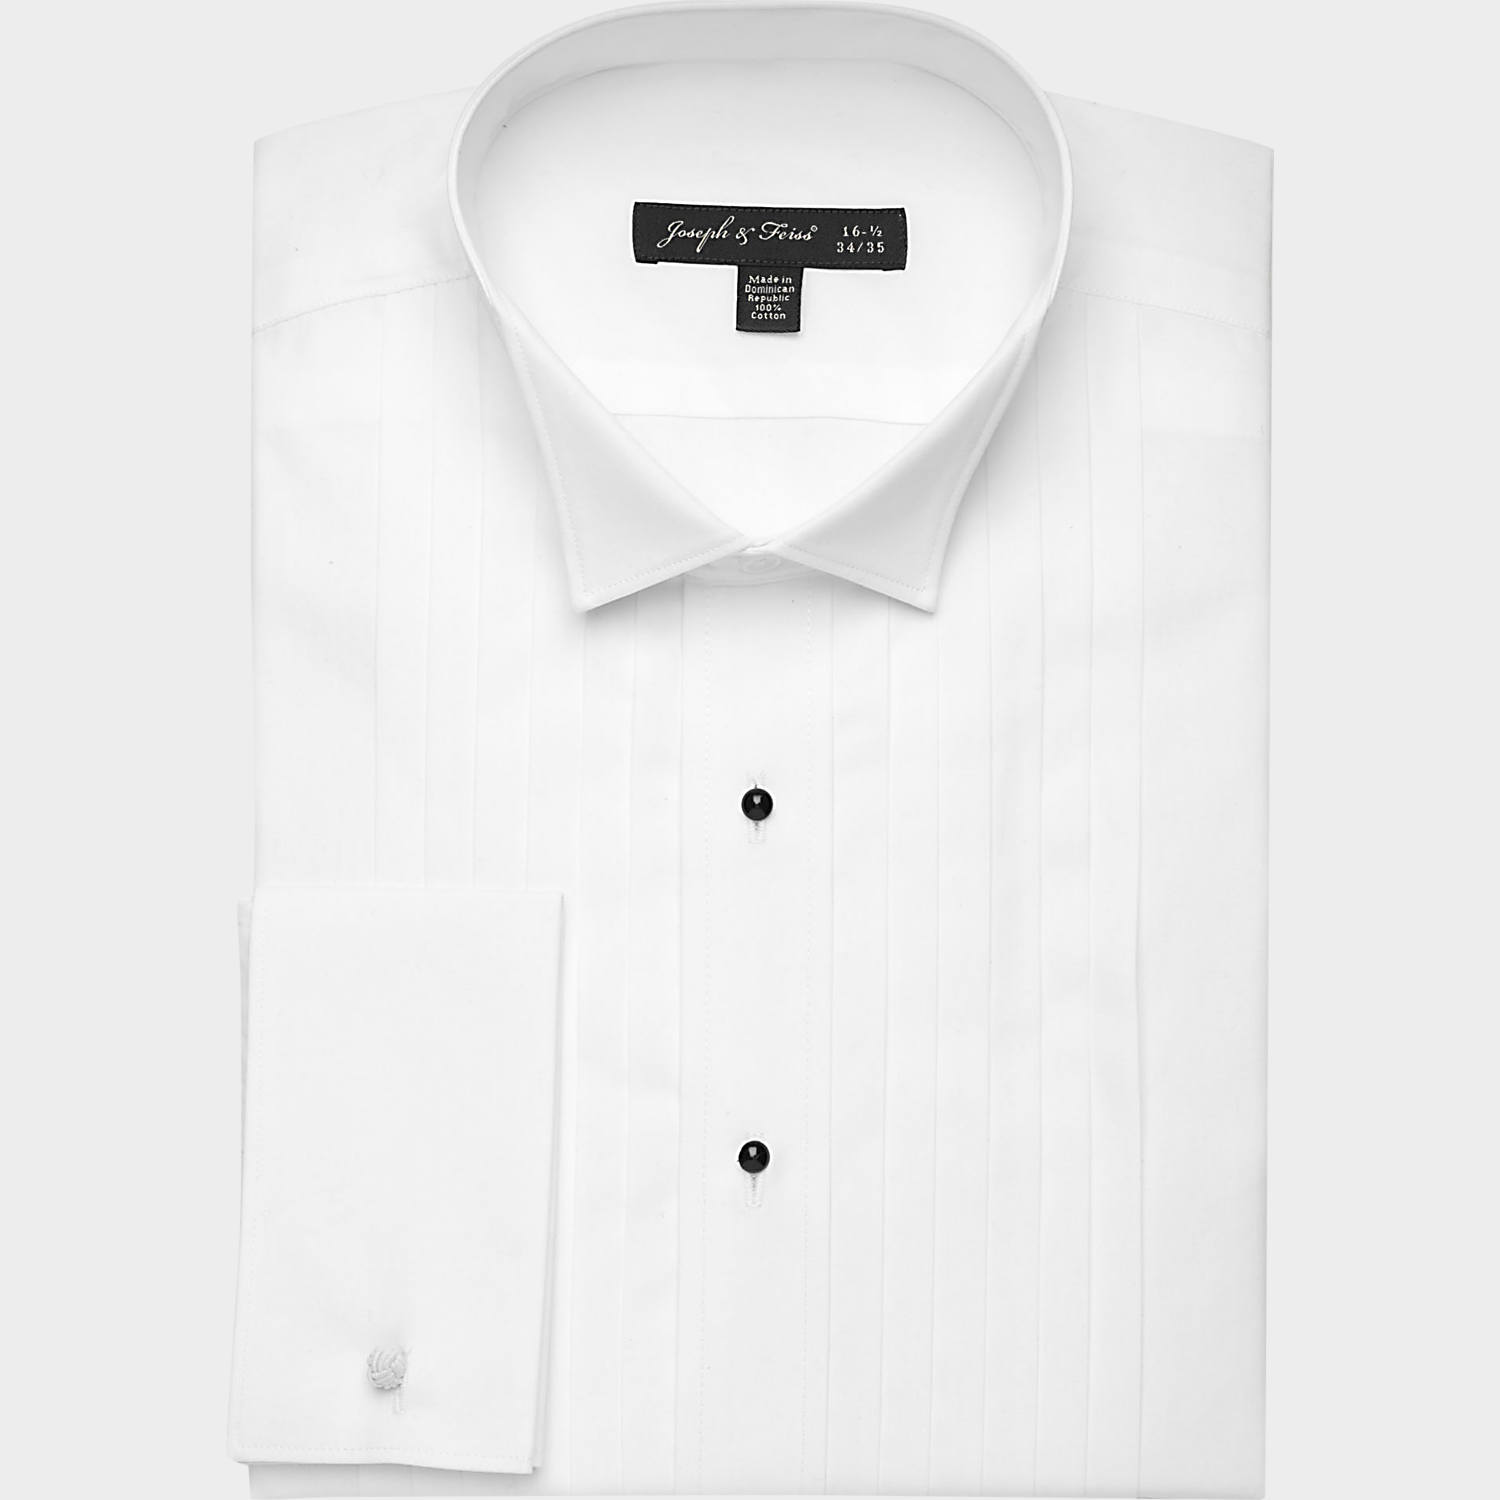 Joseph & Feiss Formal White Tuxedo Classic Fit Shirt - Men's ...